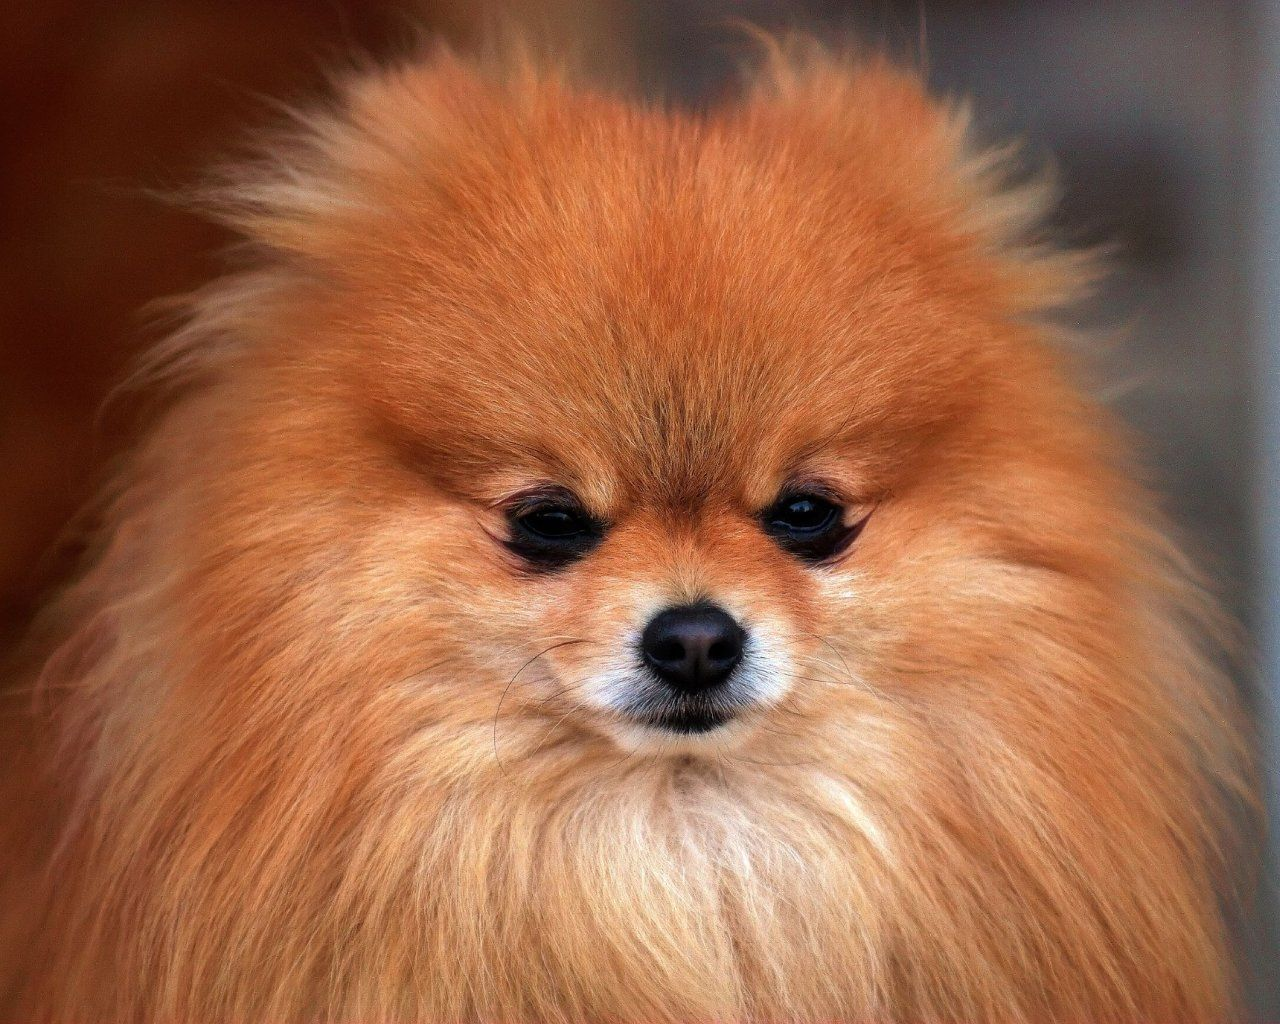 Pictures Of Small Dogs Pomeranian All Small Dogs Wallpaper